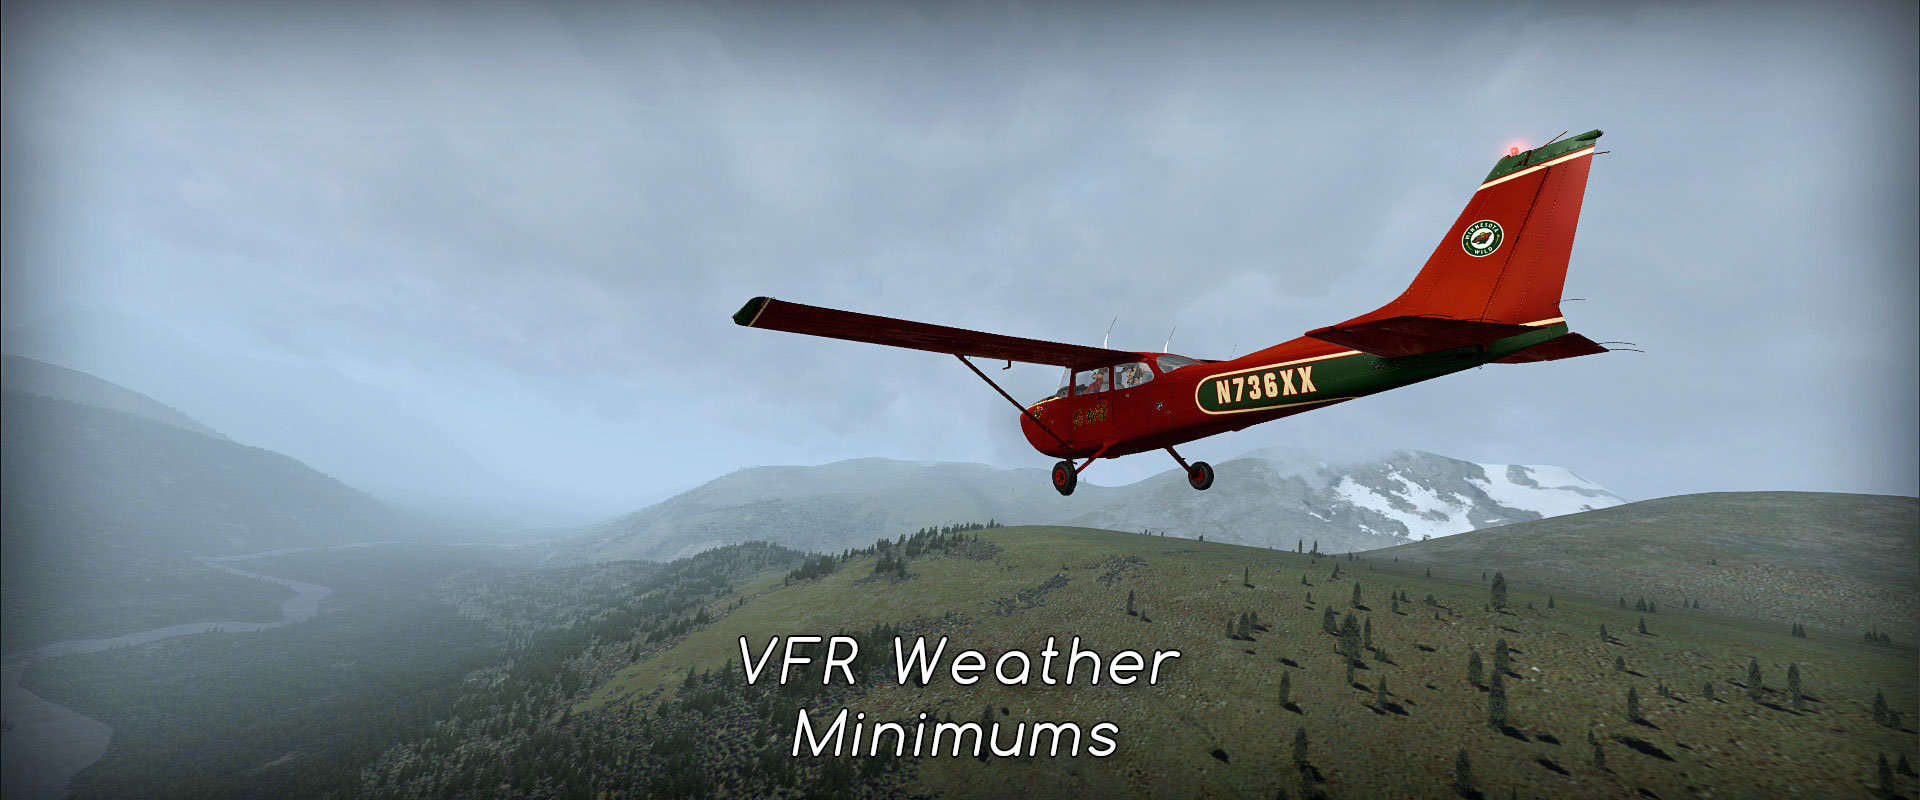 VFR Weather Minimums